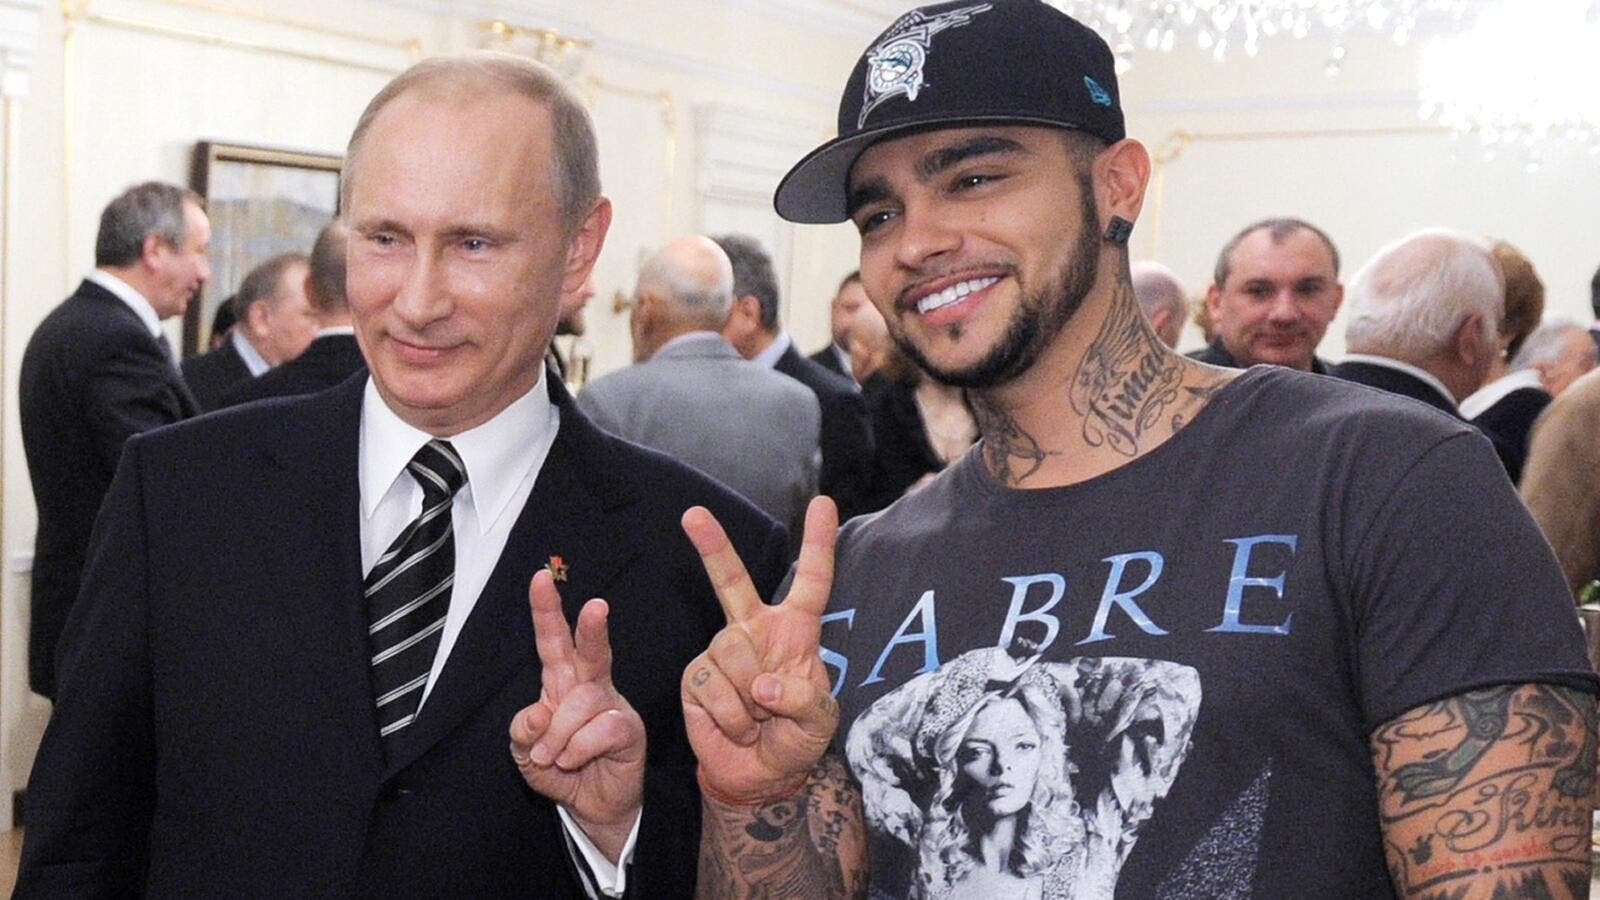 Vladimir Putin posing for a photo with Timati in 2012. Photograph: Alexey Druzhinin/AFP